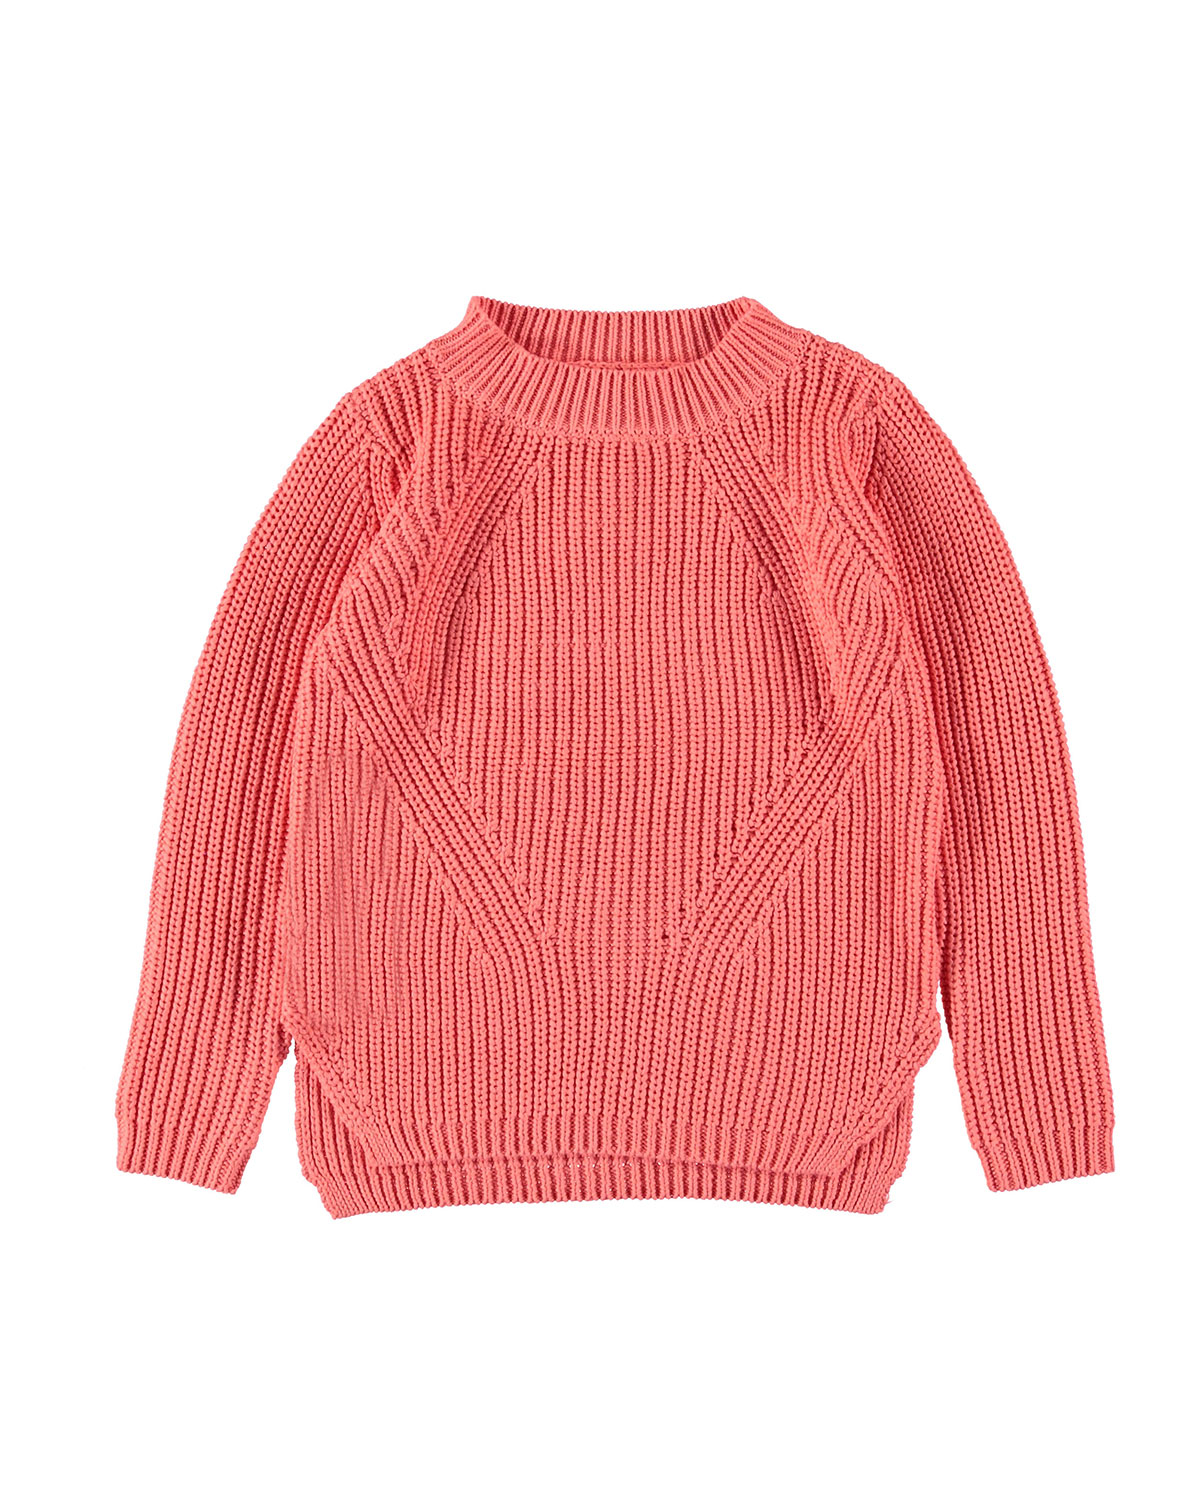 Molo GILLIS MIXED KNIT SPLIT HEM SWEATER